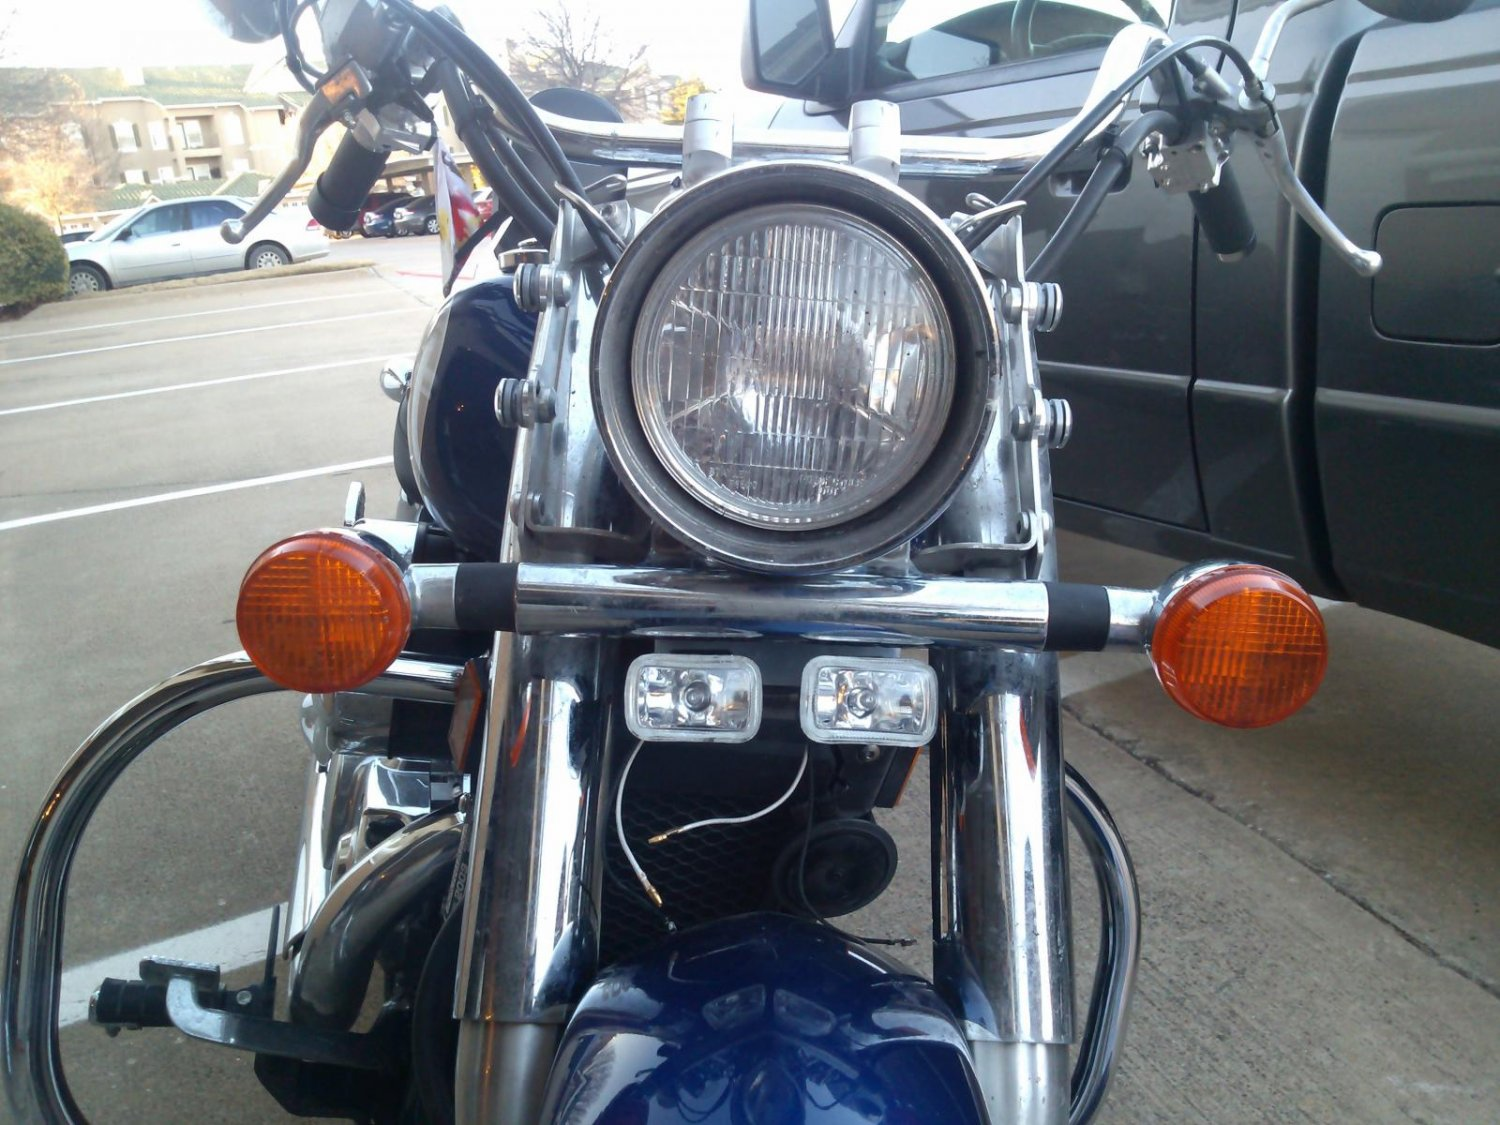 Honda Shadow Hella Fog Lamps Driving Lights Kit